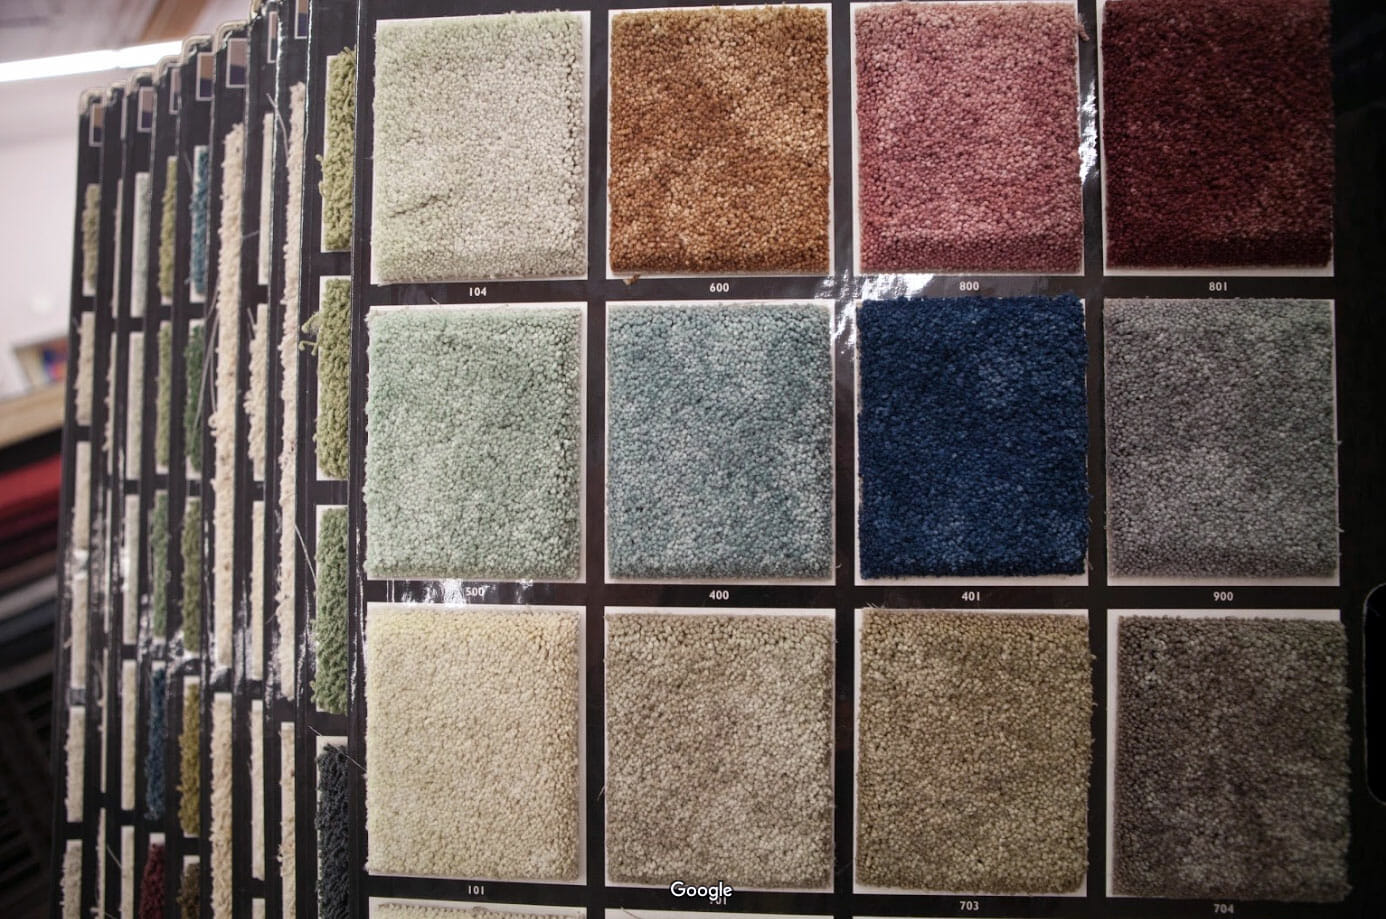 Carpet Depot AZ   Discount Carpet and Flooring Warehouse   Phoenix AZ Carpet swaths   Carpet Depot AZ